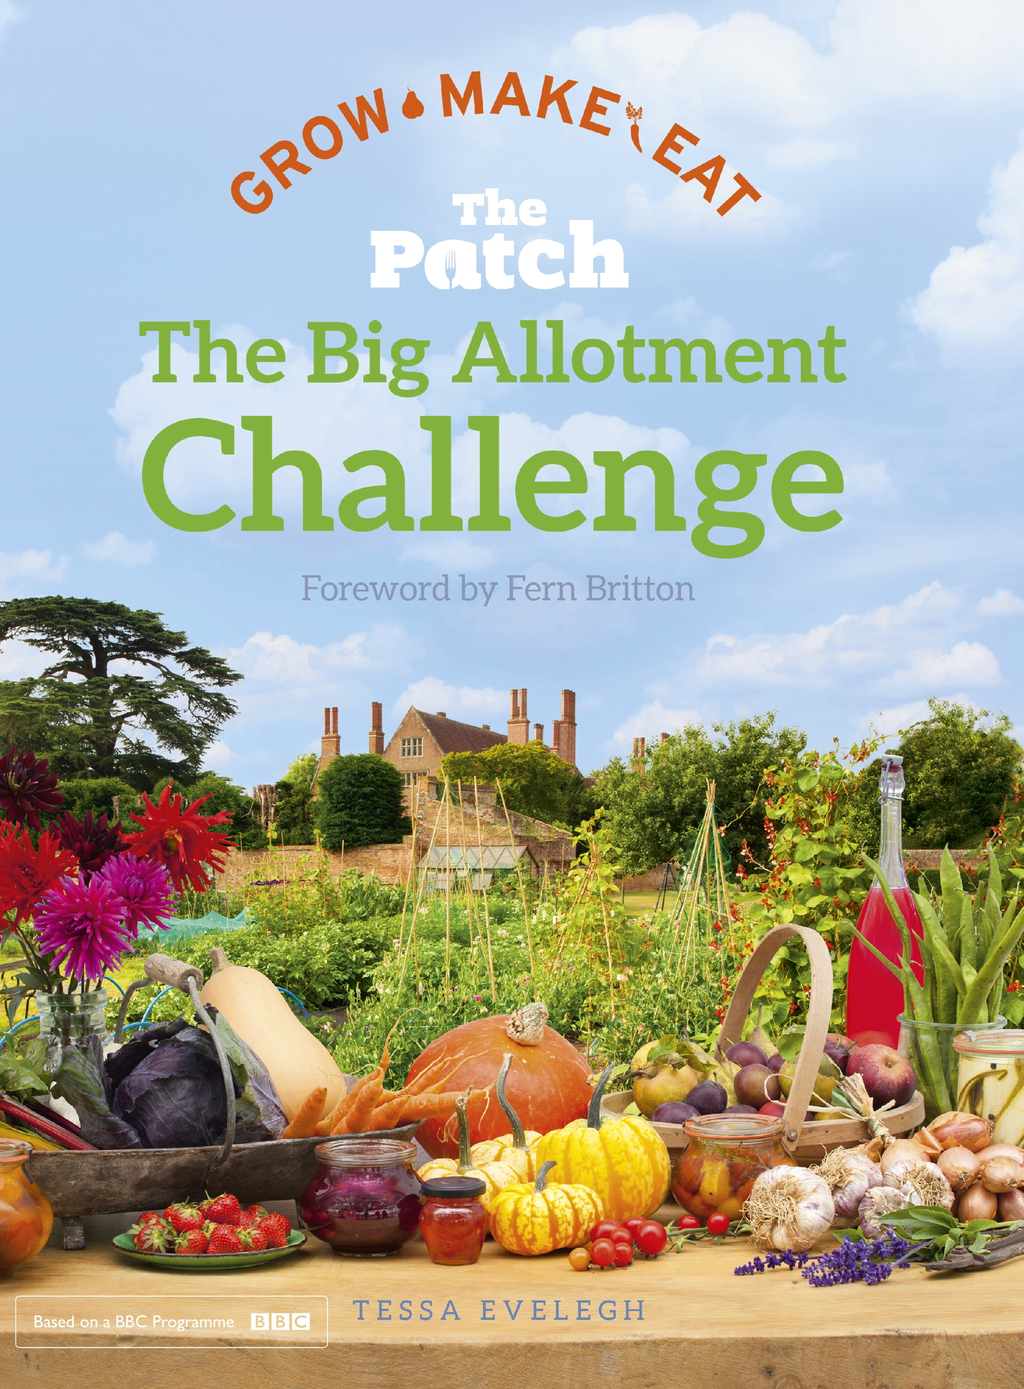 The Big Allotment Challenge: The Patch - Grow Make Eat